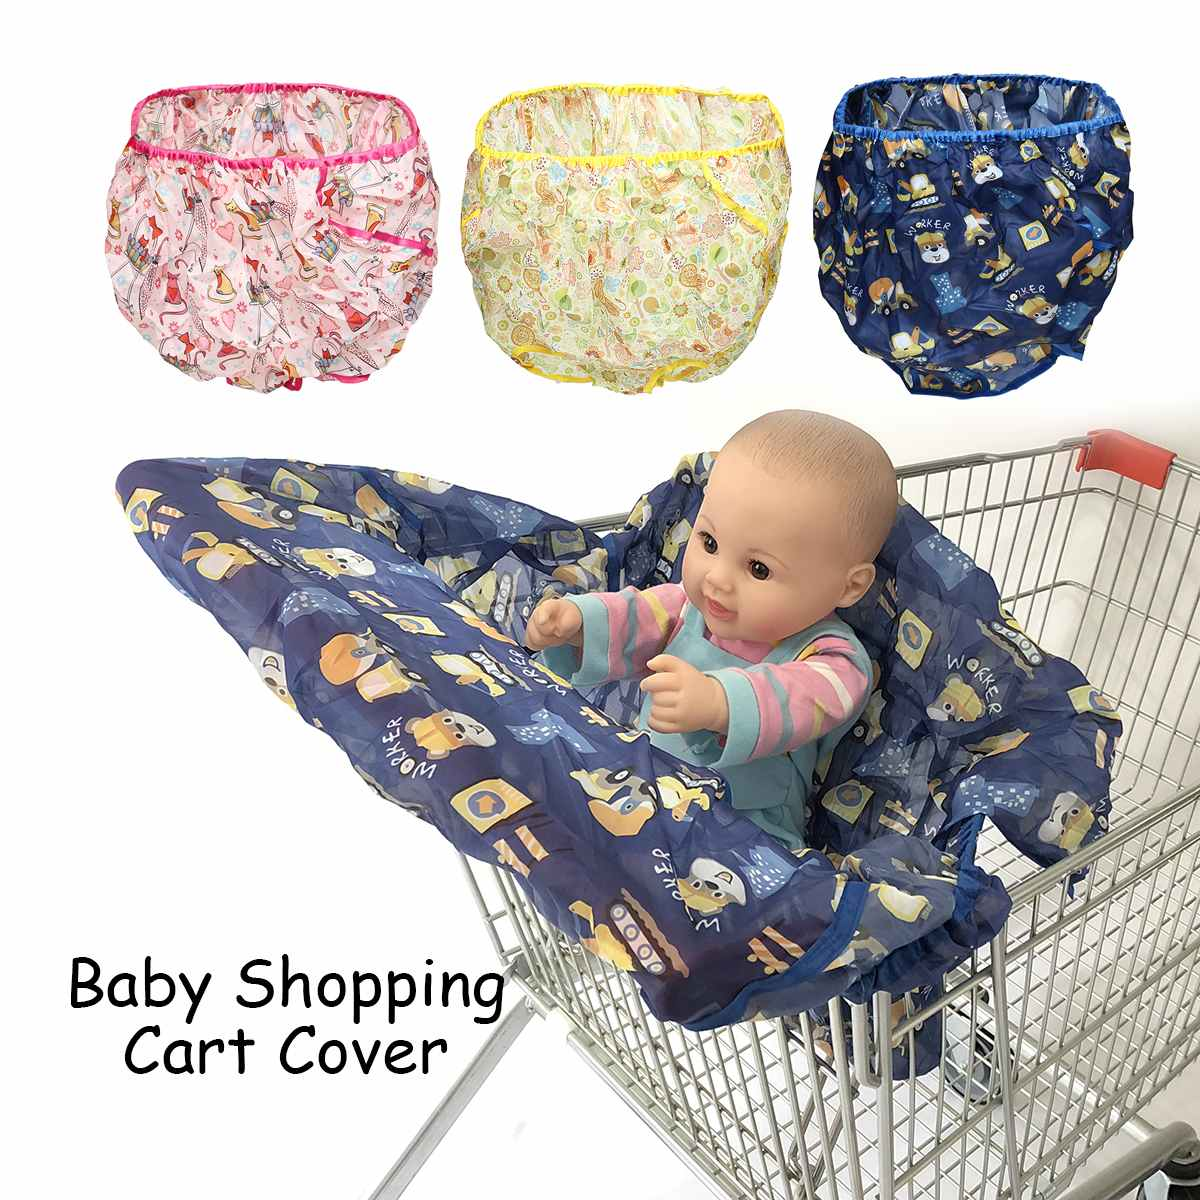 Breathable Baby Shopping Cart Cover Foldable Infant Kids Supermarket Cart Seat Pad Cushion Anti Dirty Shopping Bag +Storage Bag